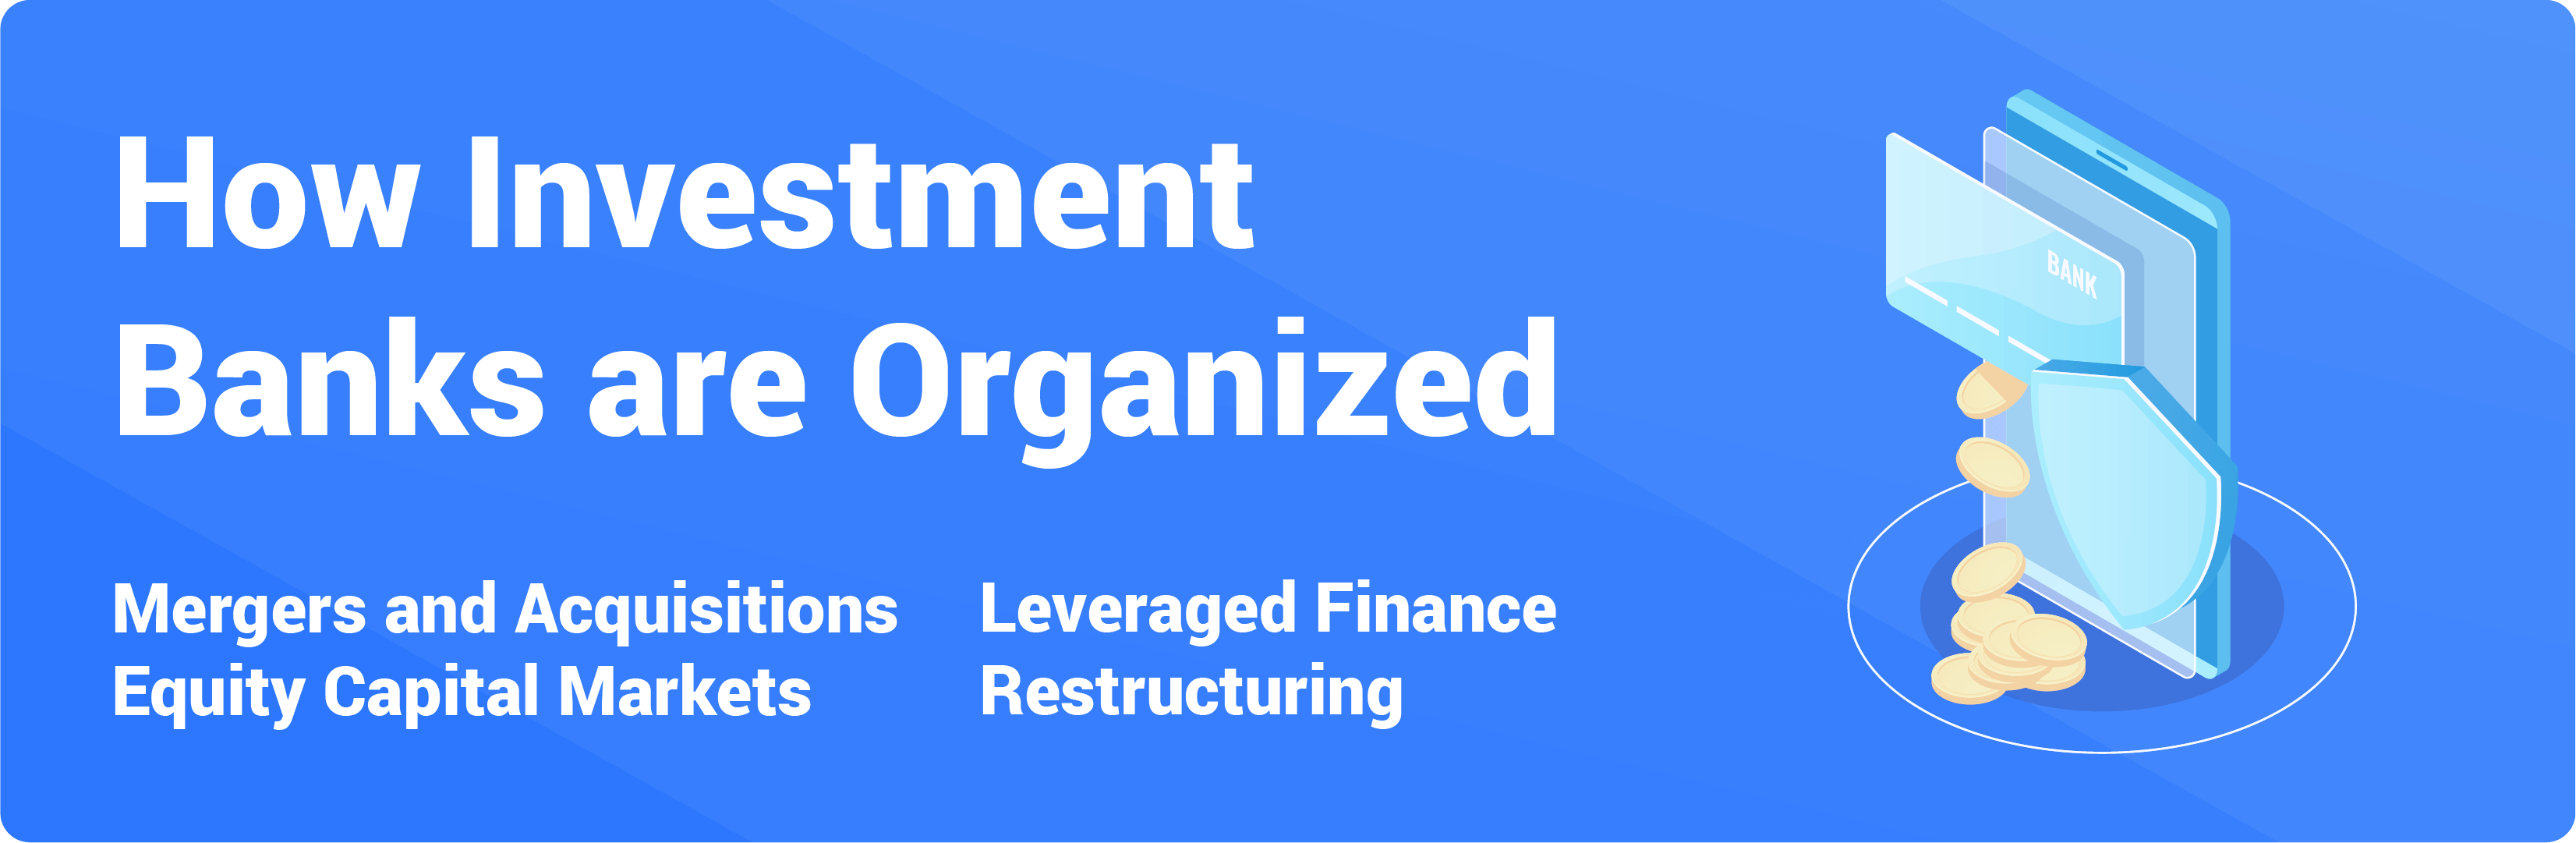 investment banks organization